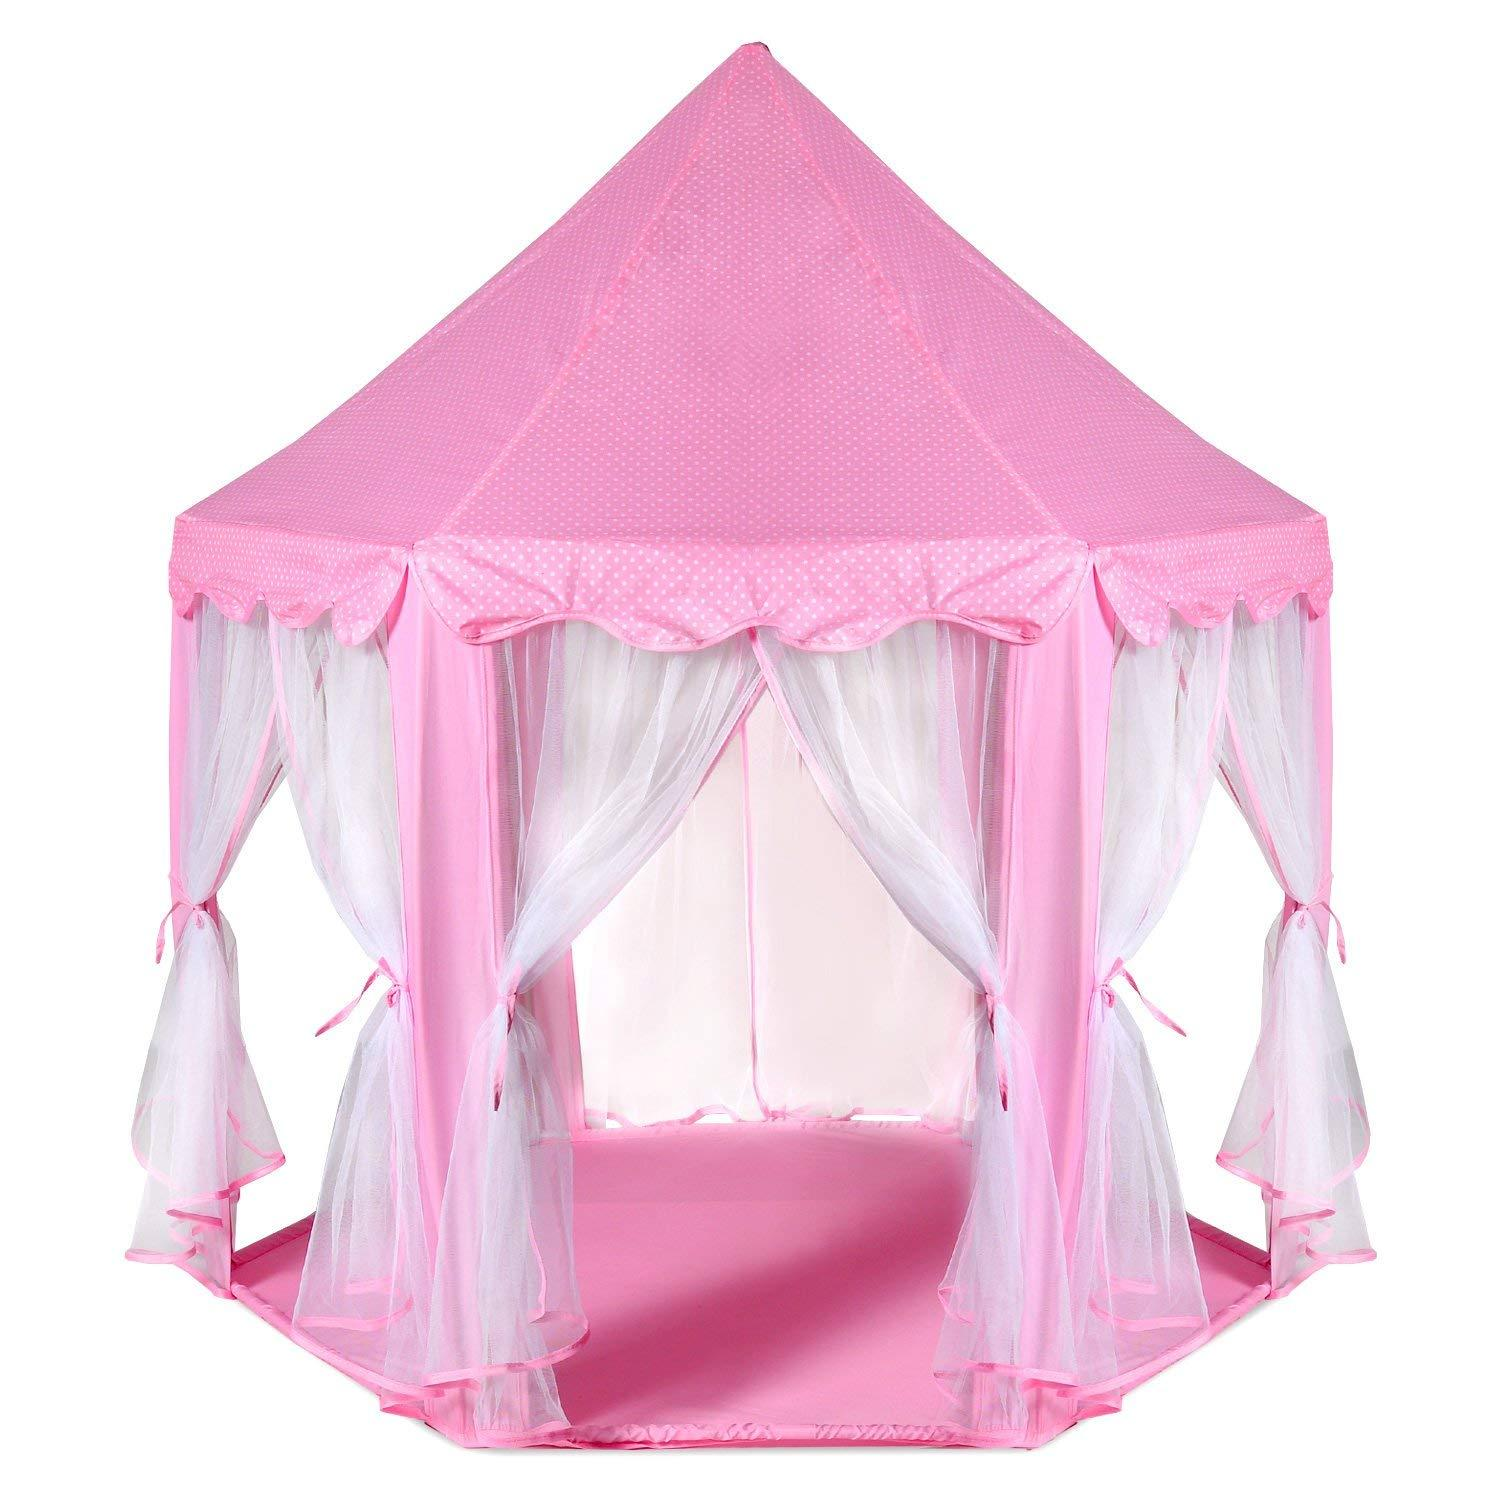 Kids Play Tent Large Indoor And Outdoor Kids Play House Pink Hexagon Princess Castle Kids Play Tent Child Play Tent